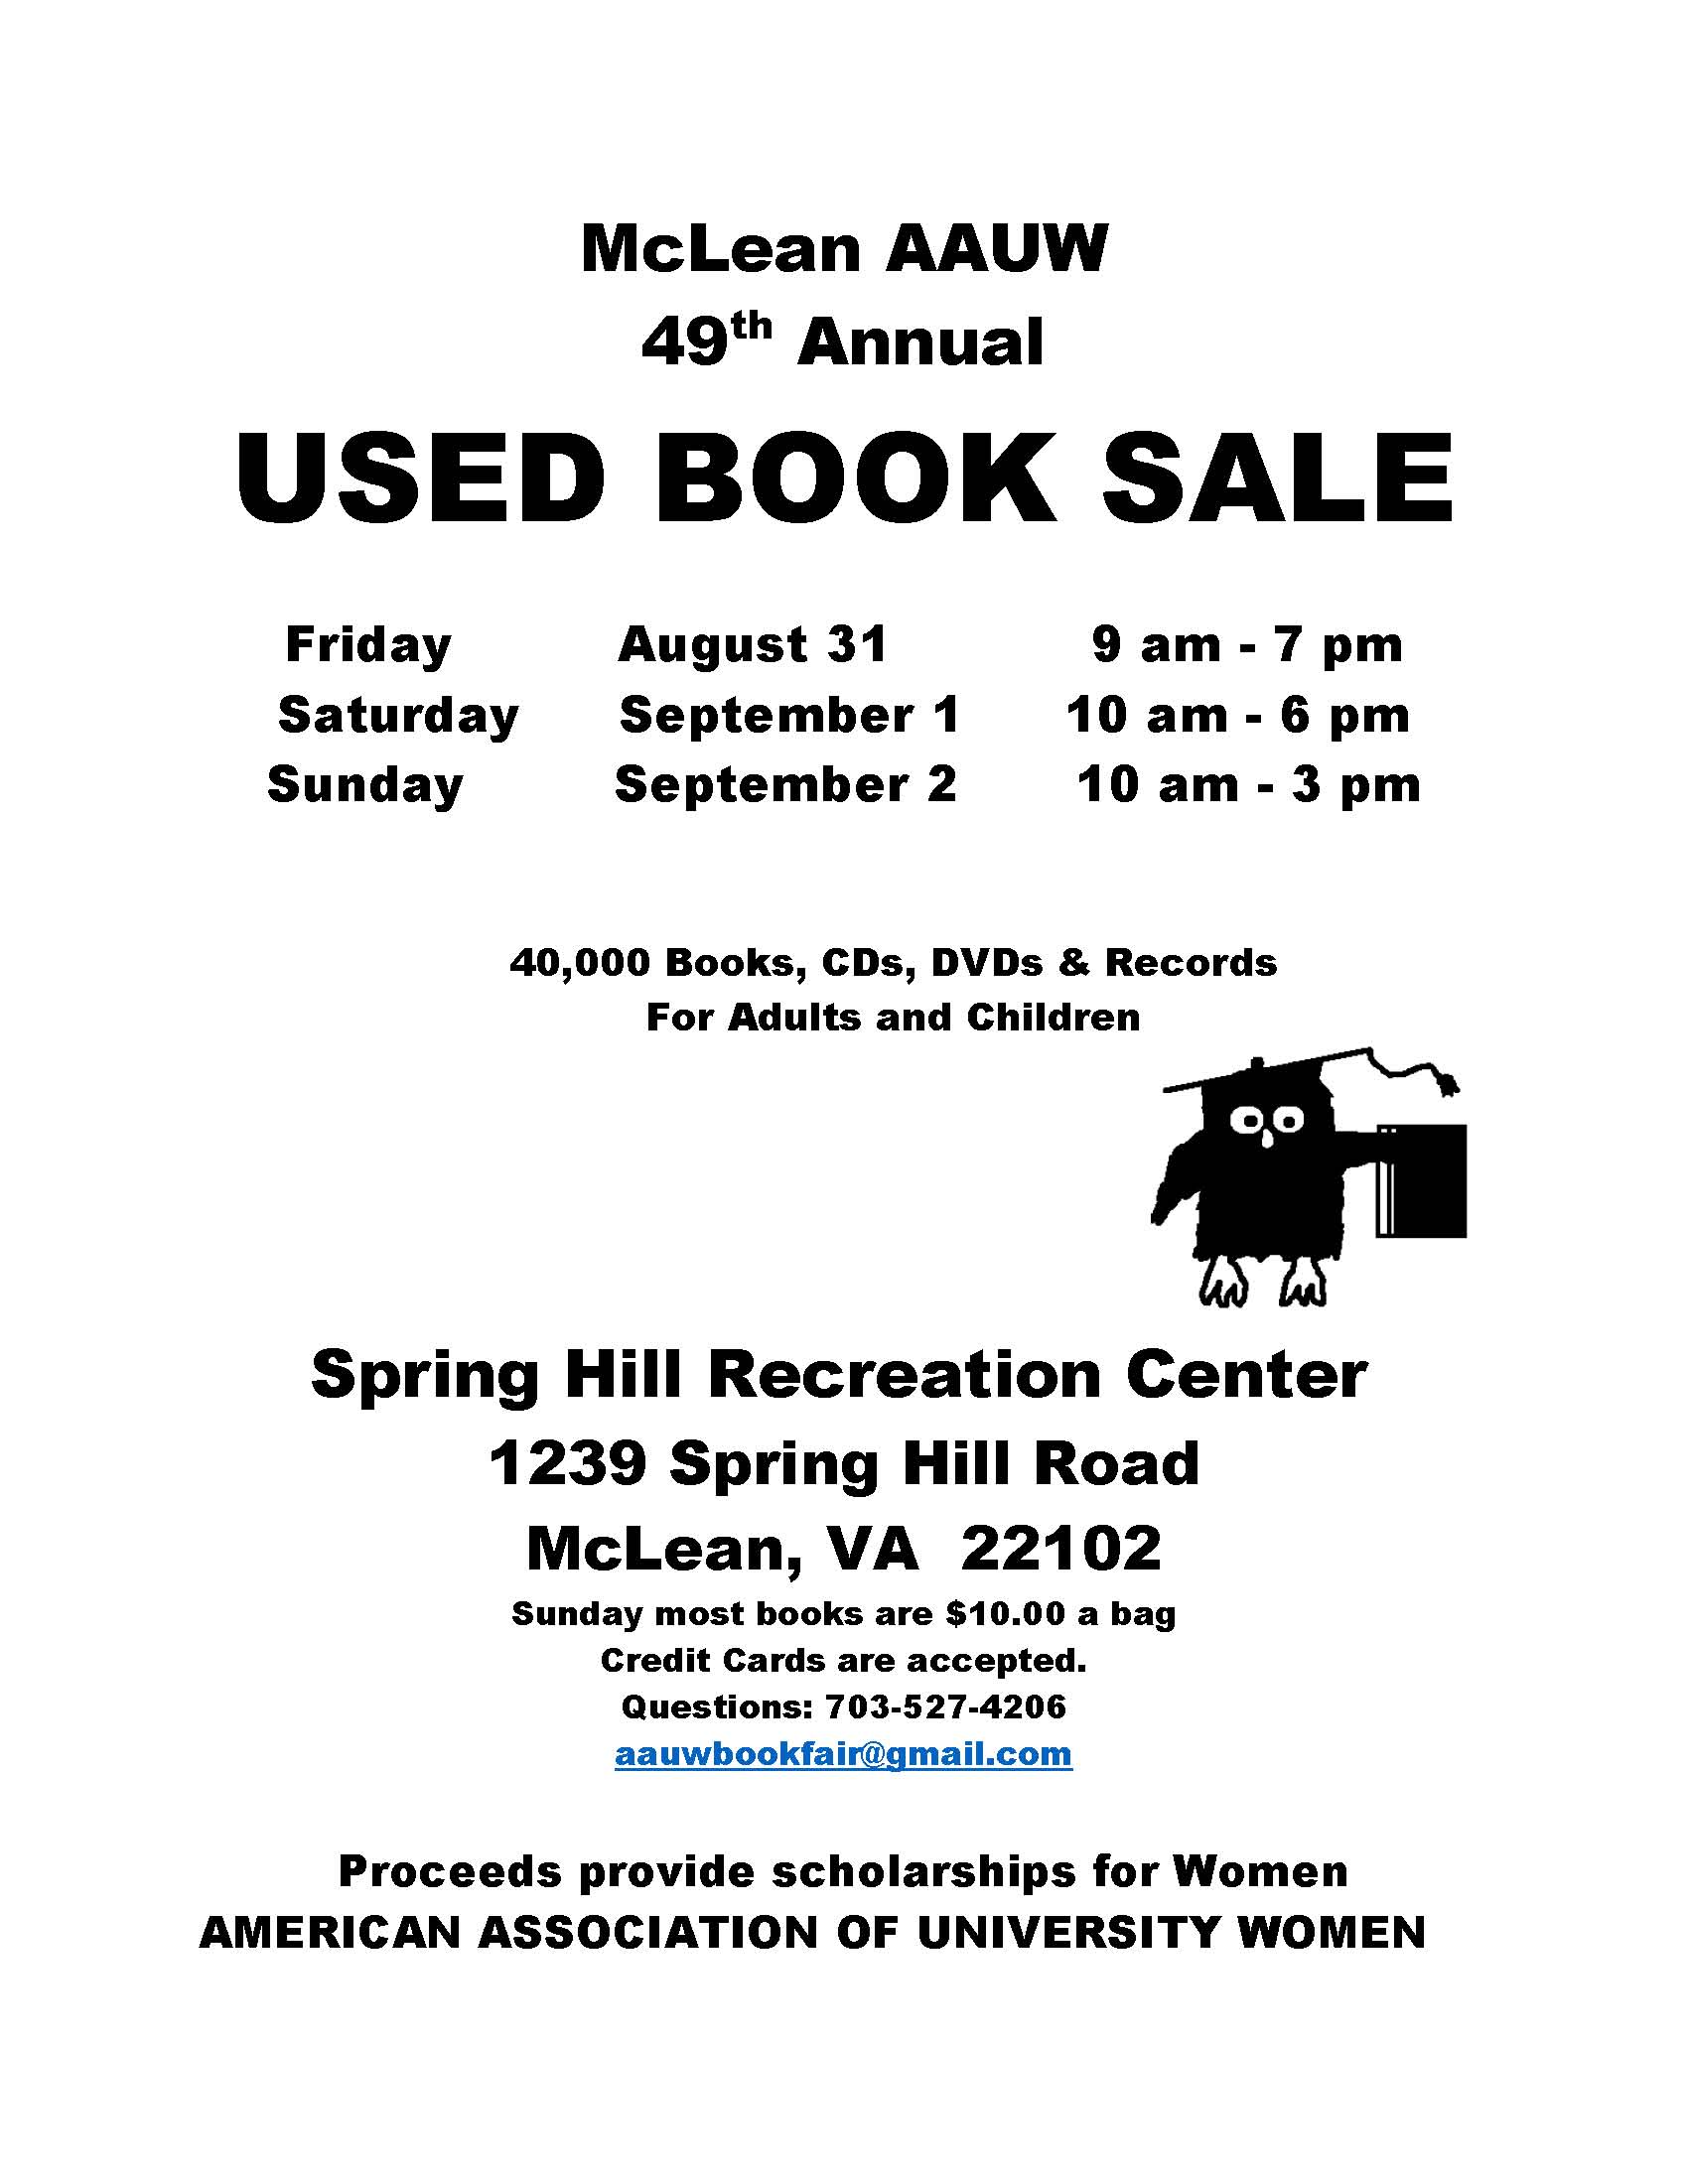 Mclean AAUW Used Book Sale